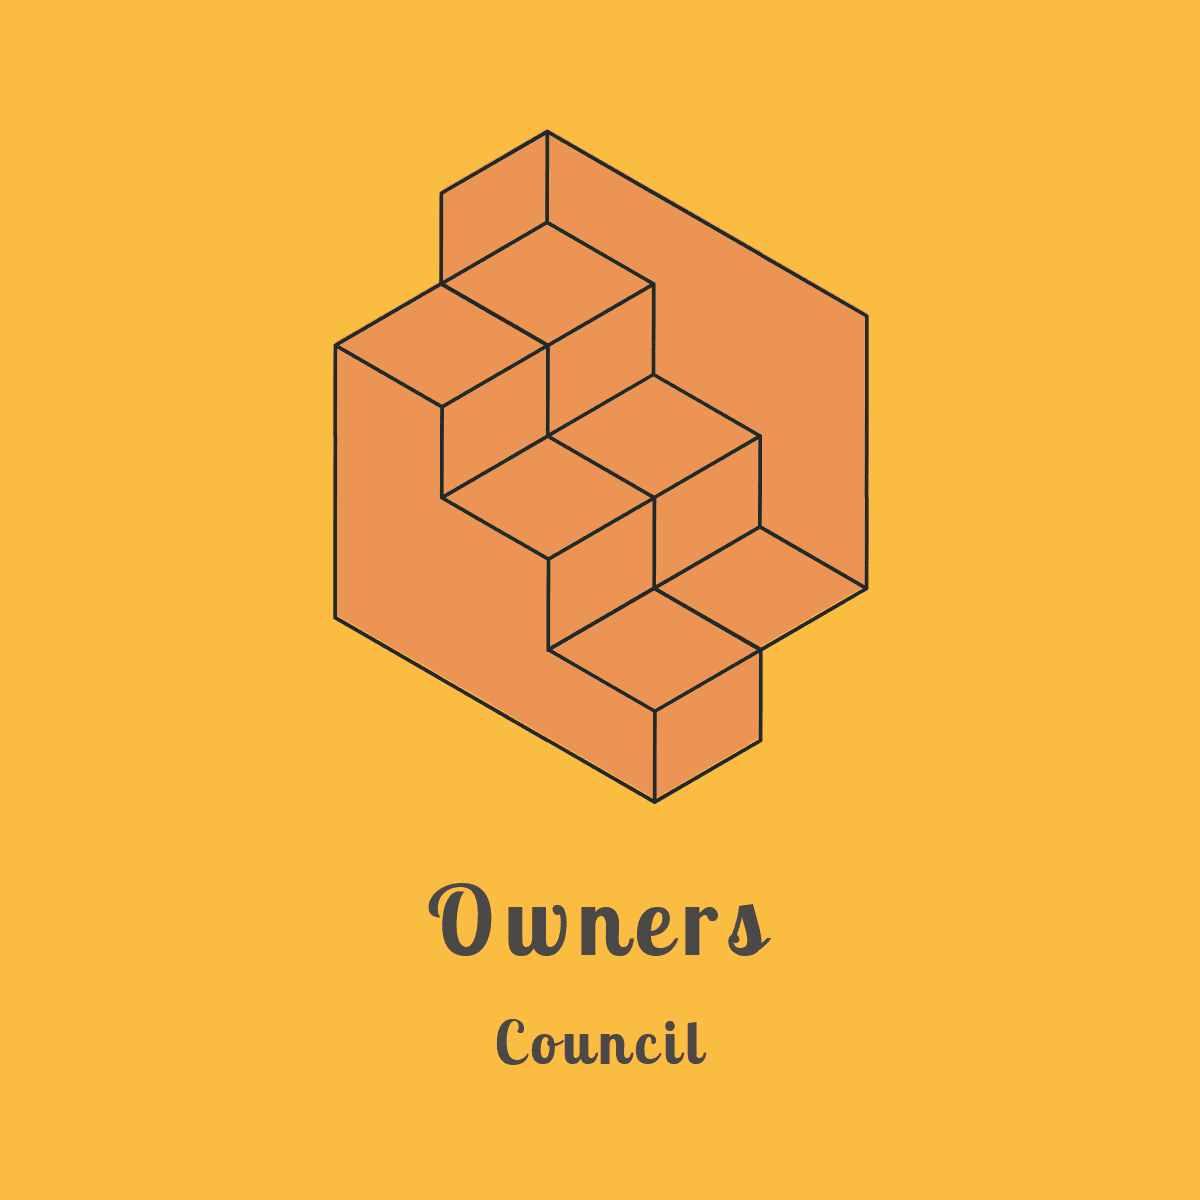 Owners Council